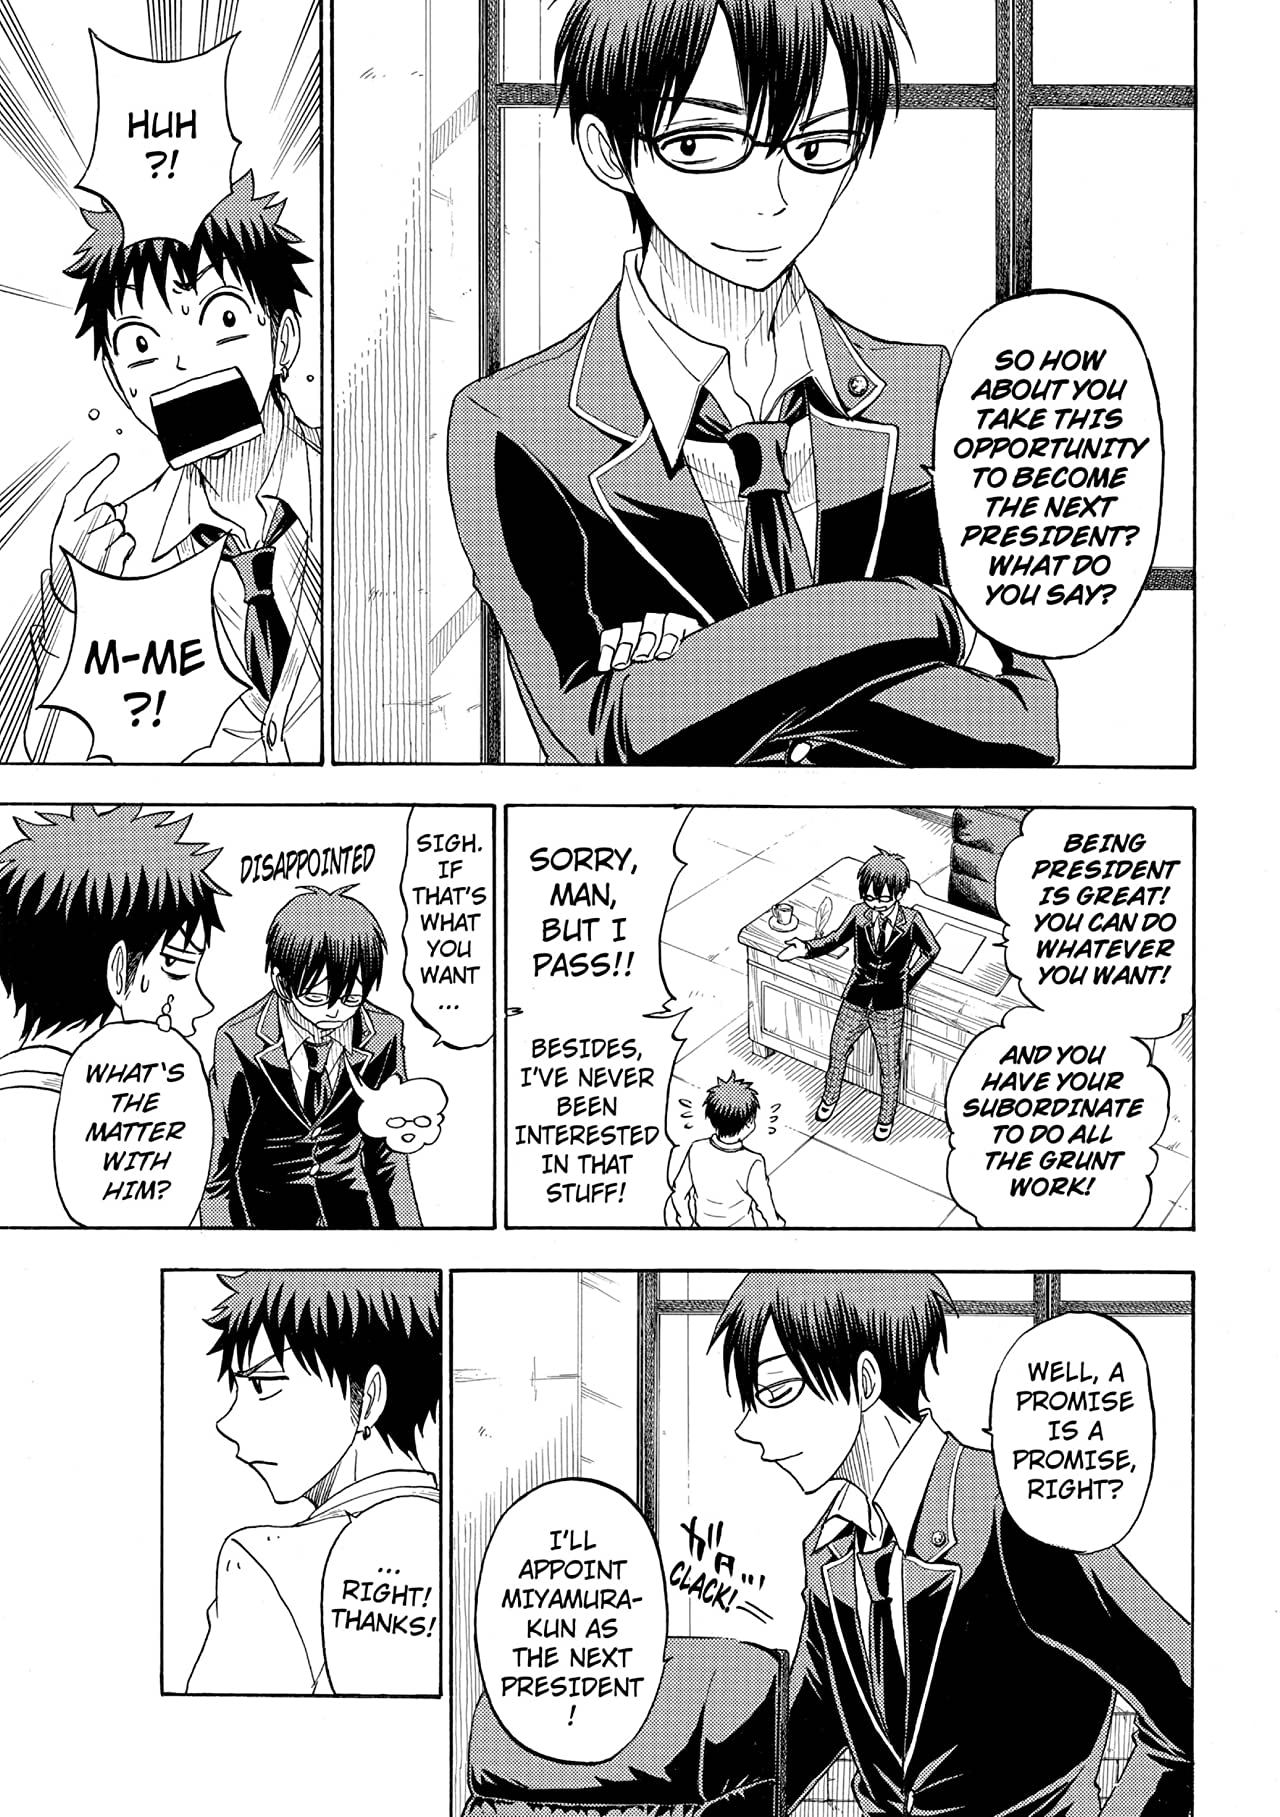 Yamada-kun and the Seven Witches #67